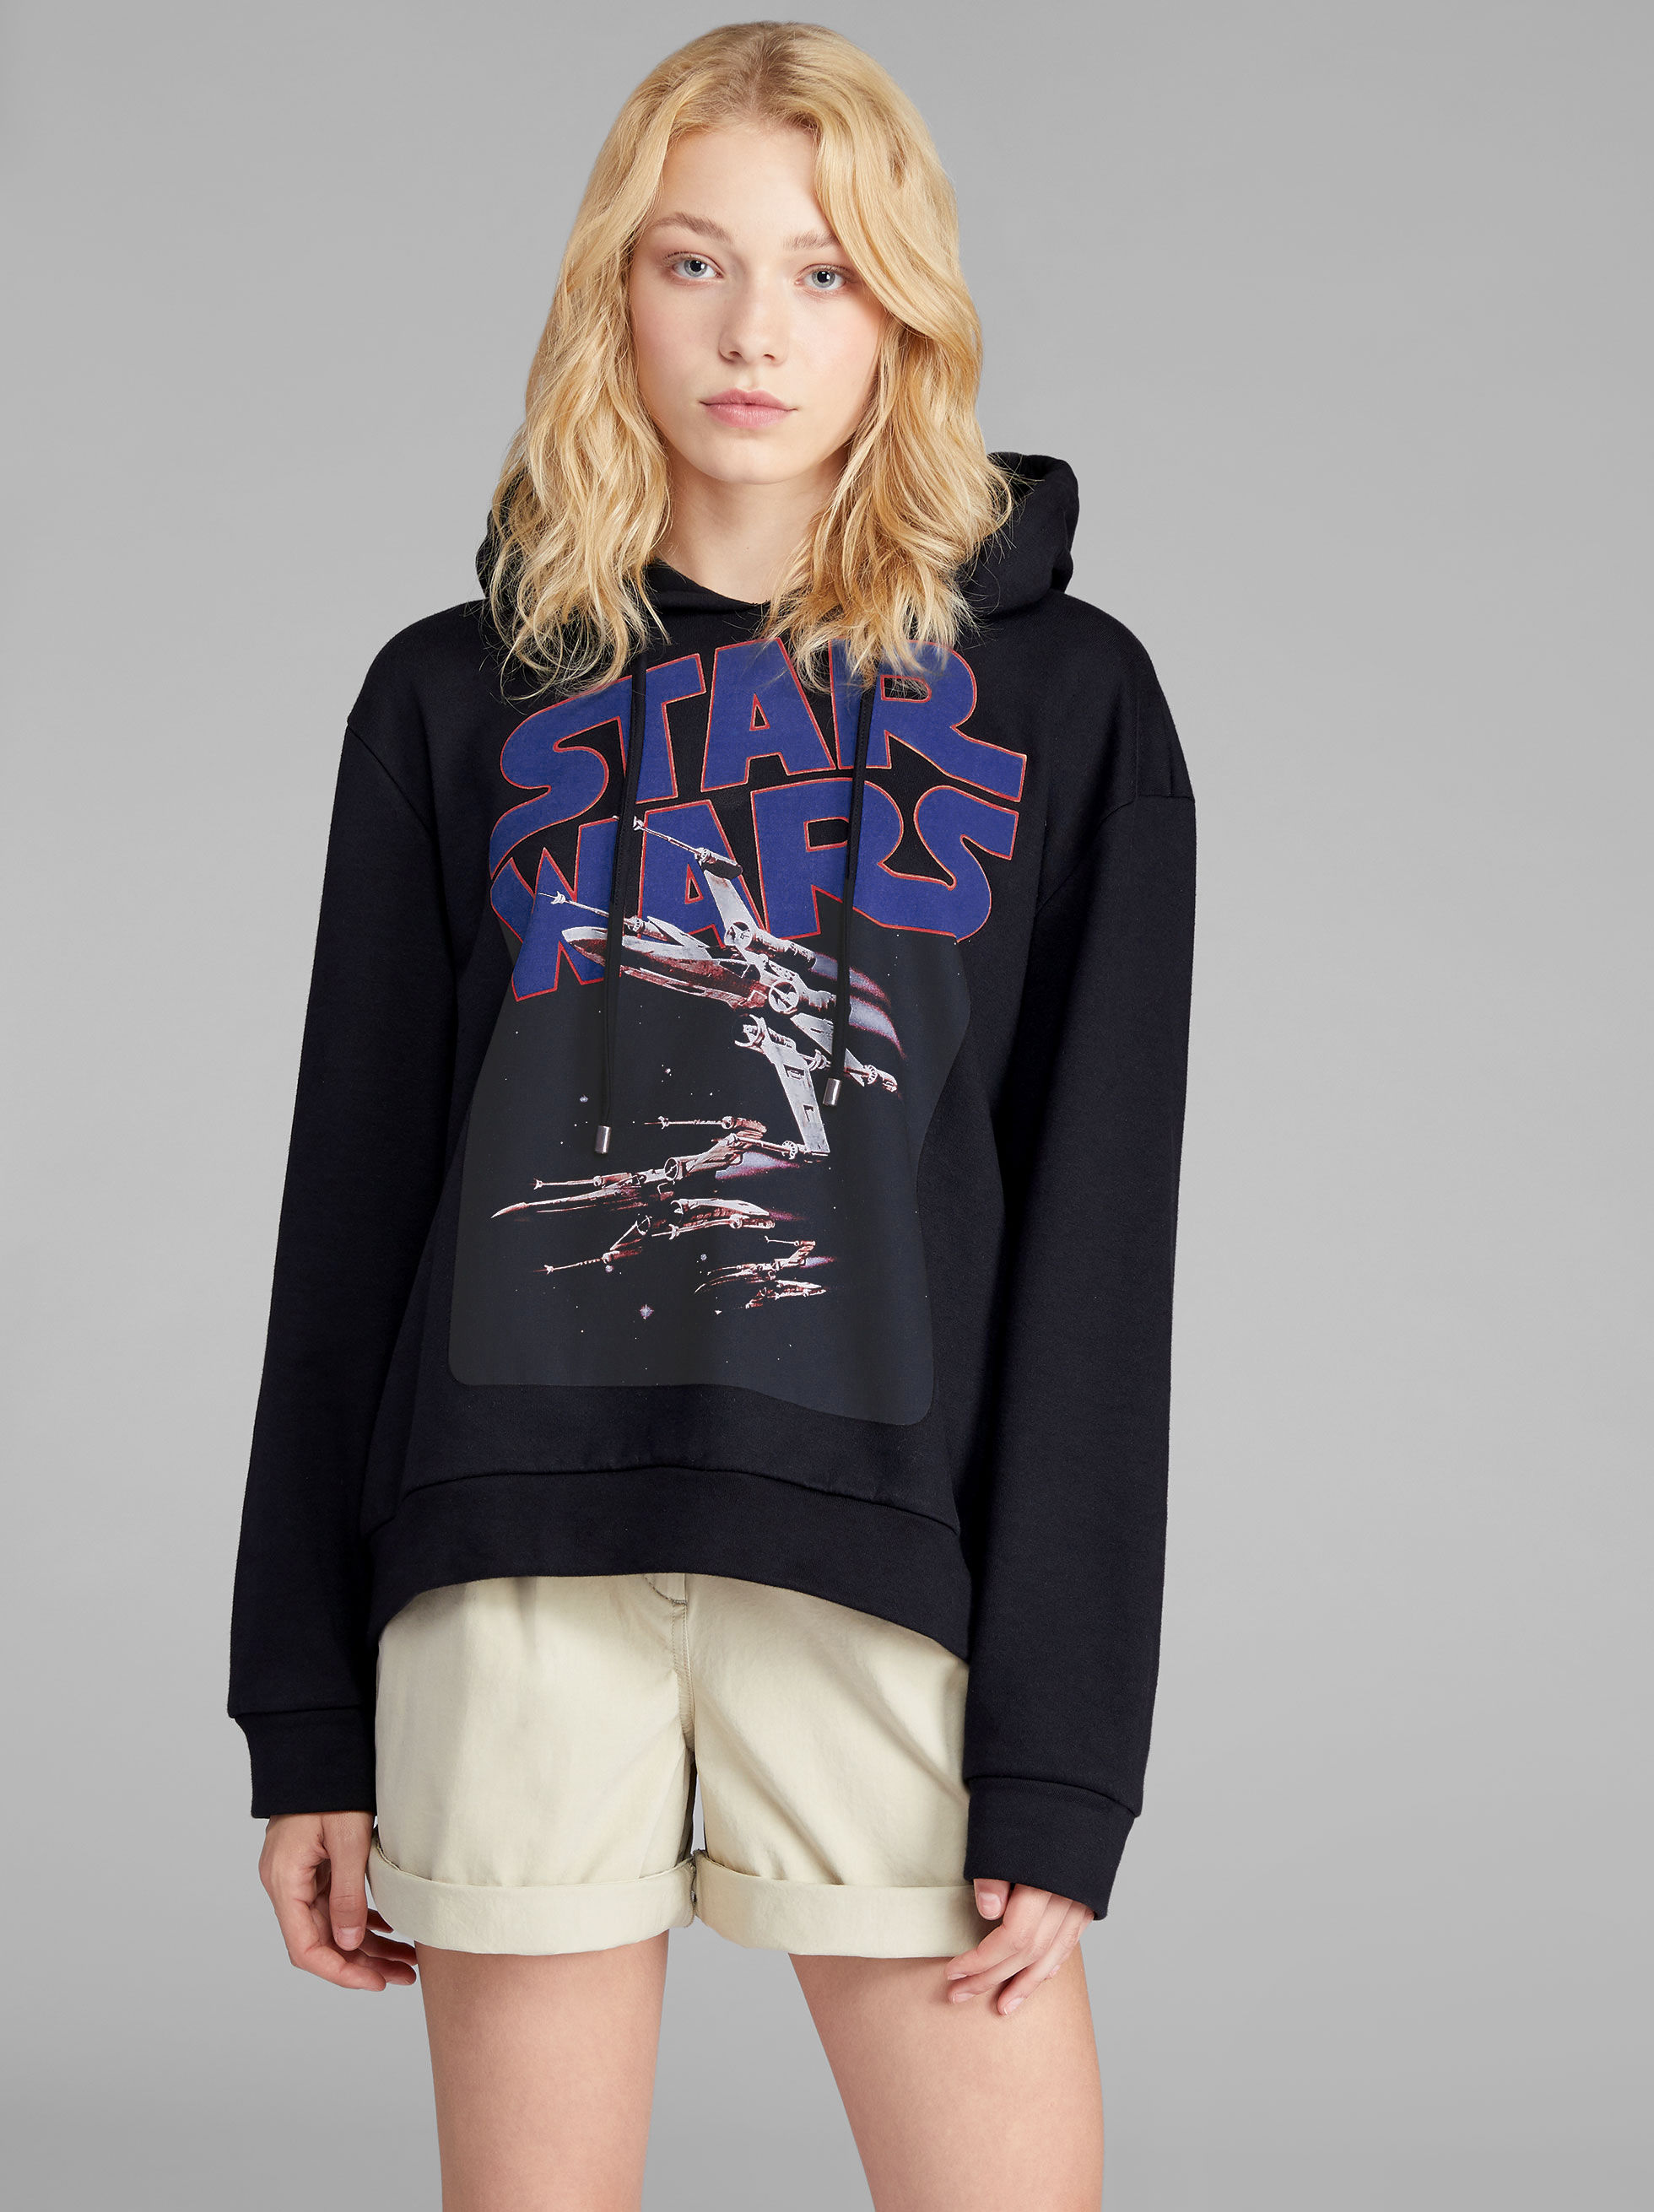 ETRO X STAR WARS HOODED SWEATSHIRT